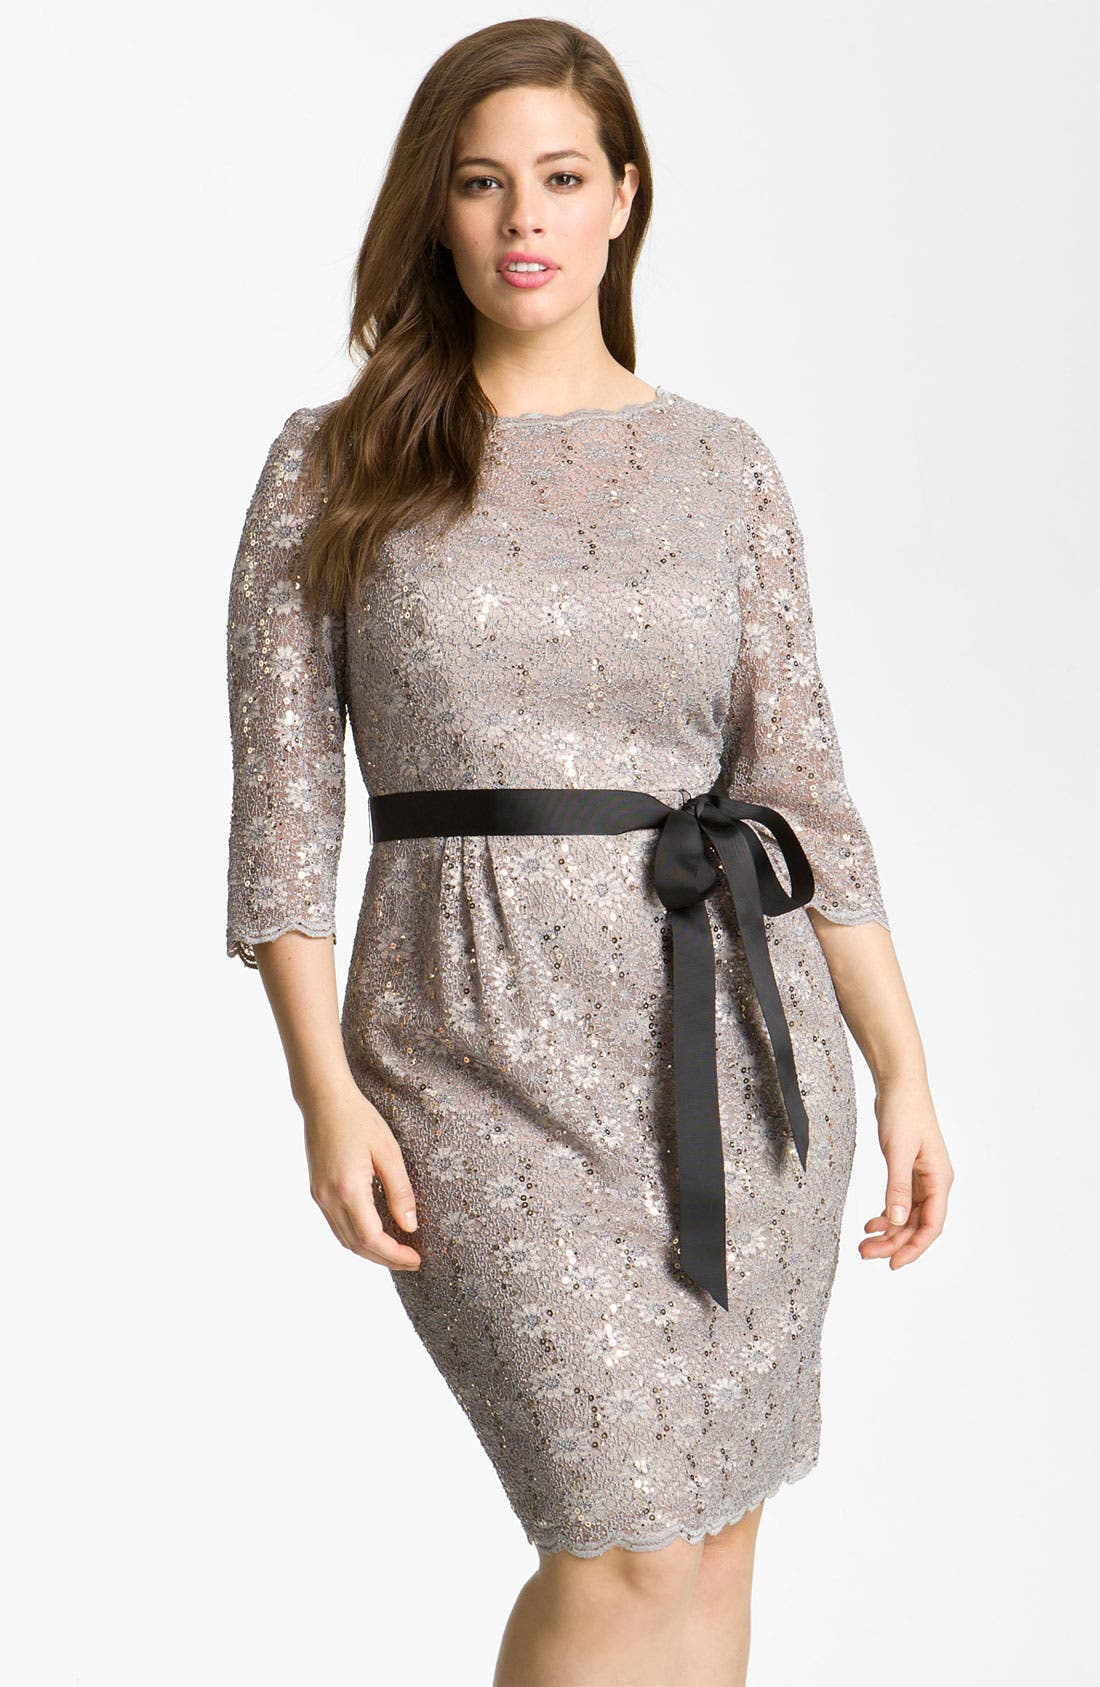 Alternate Image 1 Selected - Alex Evenings Sequin Lace Sheath Dress (Plus Size)